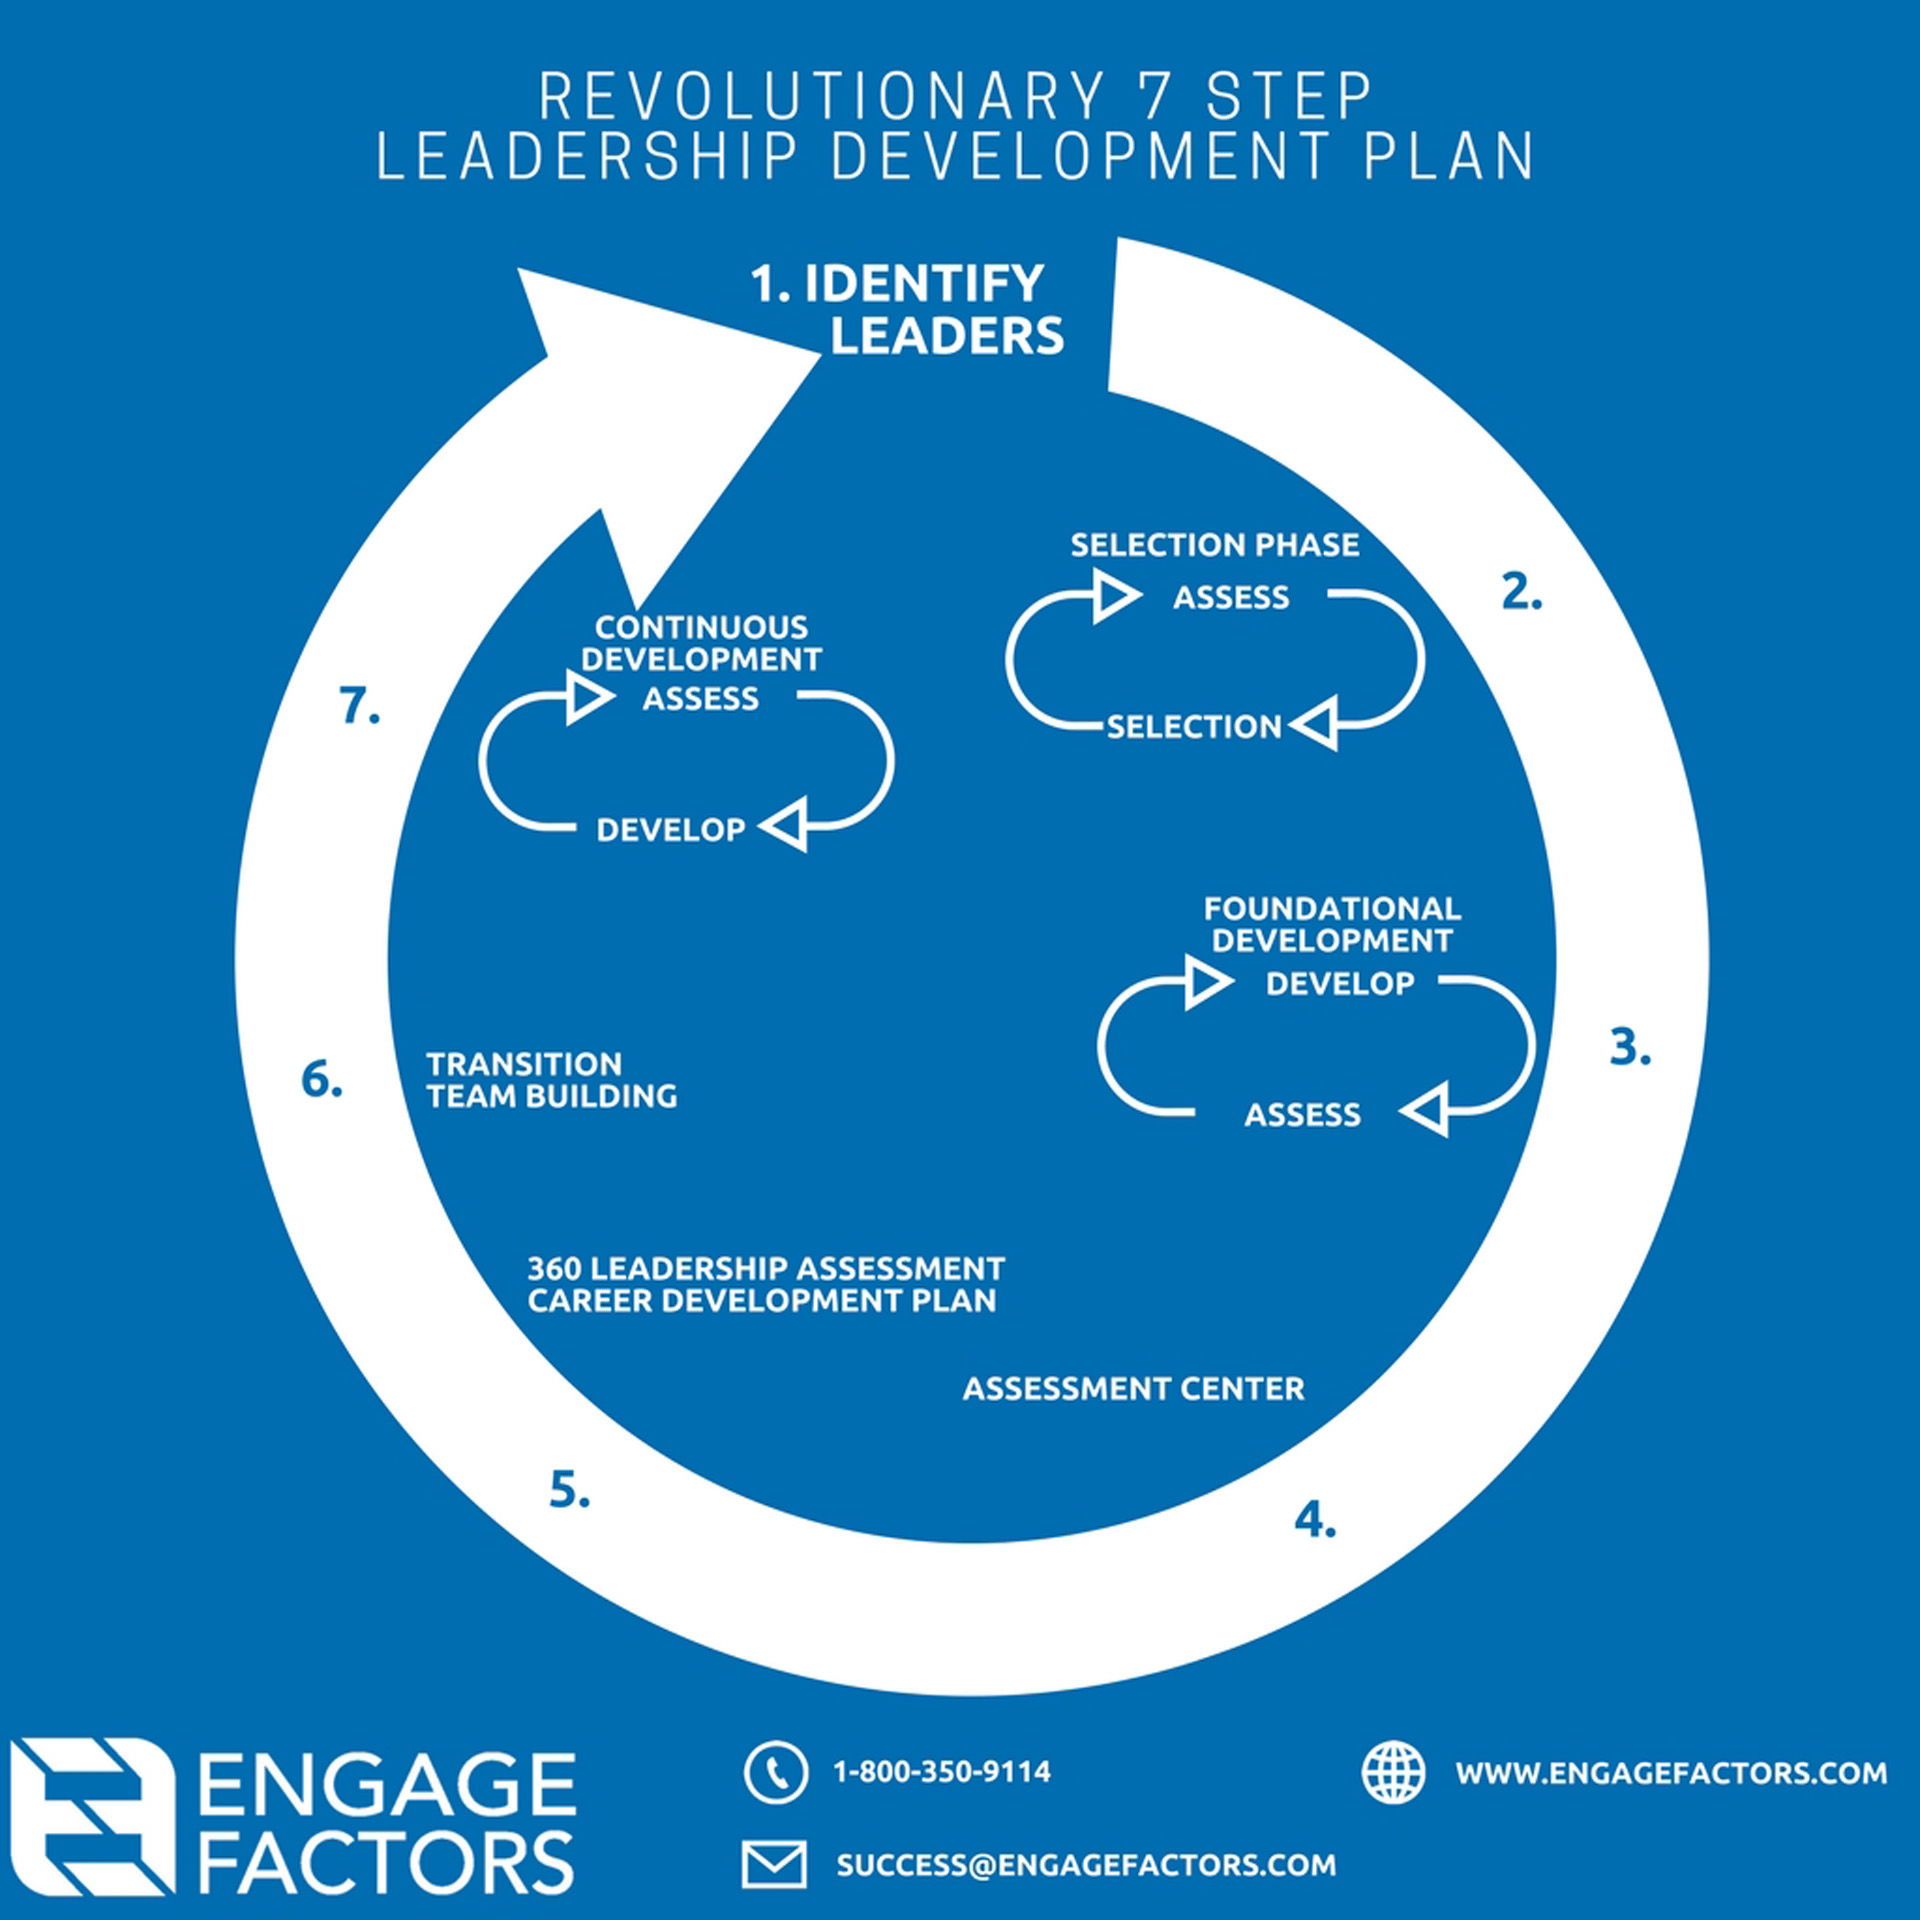 Revolutionary 7 Step Leadership Development Plan